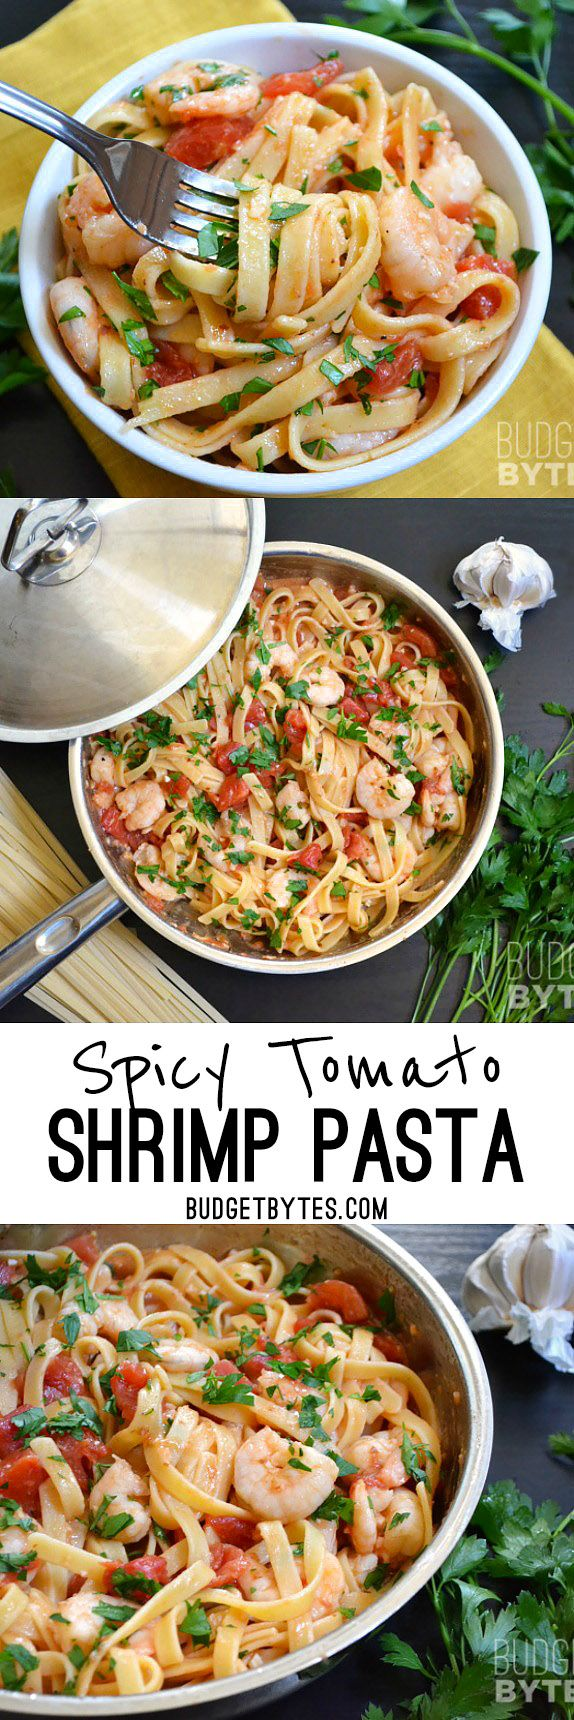 It takes less than 30 minutes to make this super flavorful and filling Spicy Shrimp Tomato Pasta. Dinner made FAST! BudgetBytes.com